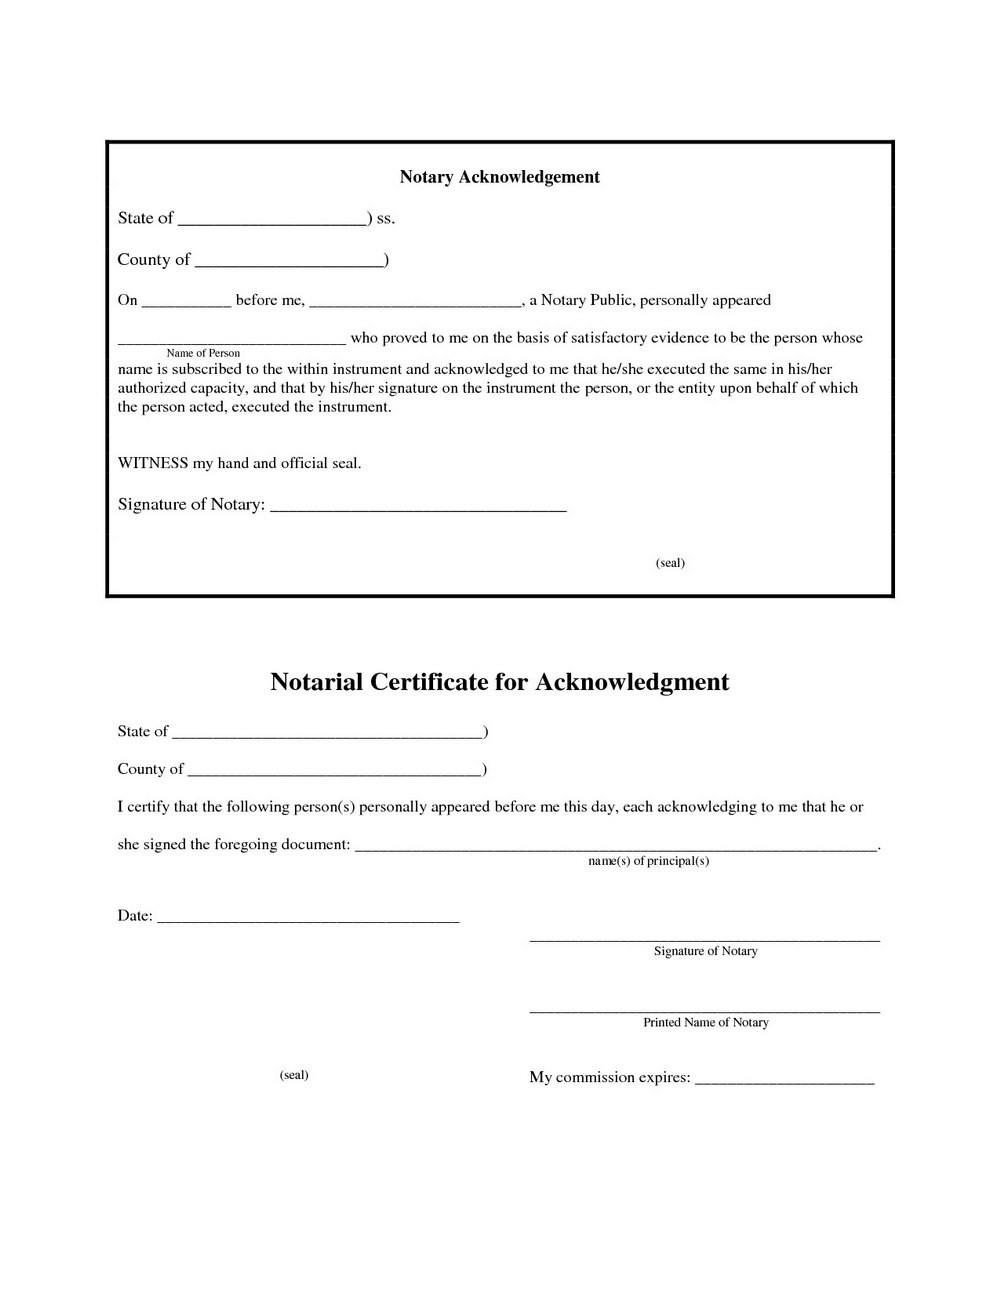 California Notary Forms 2017